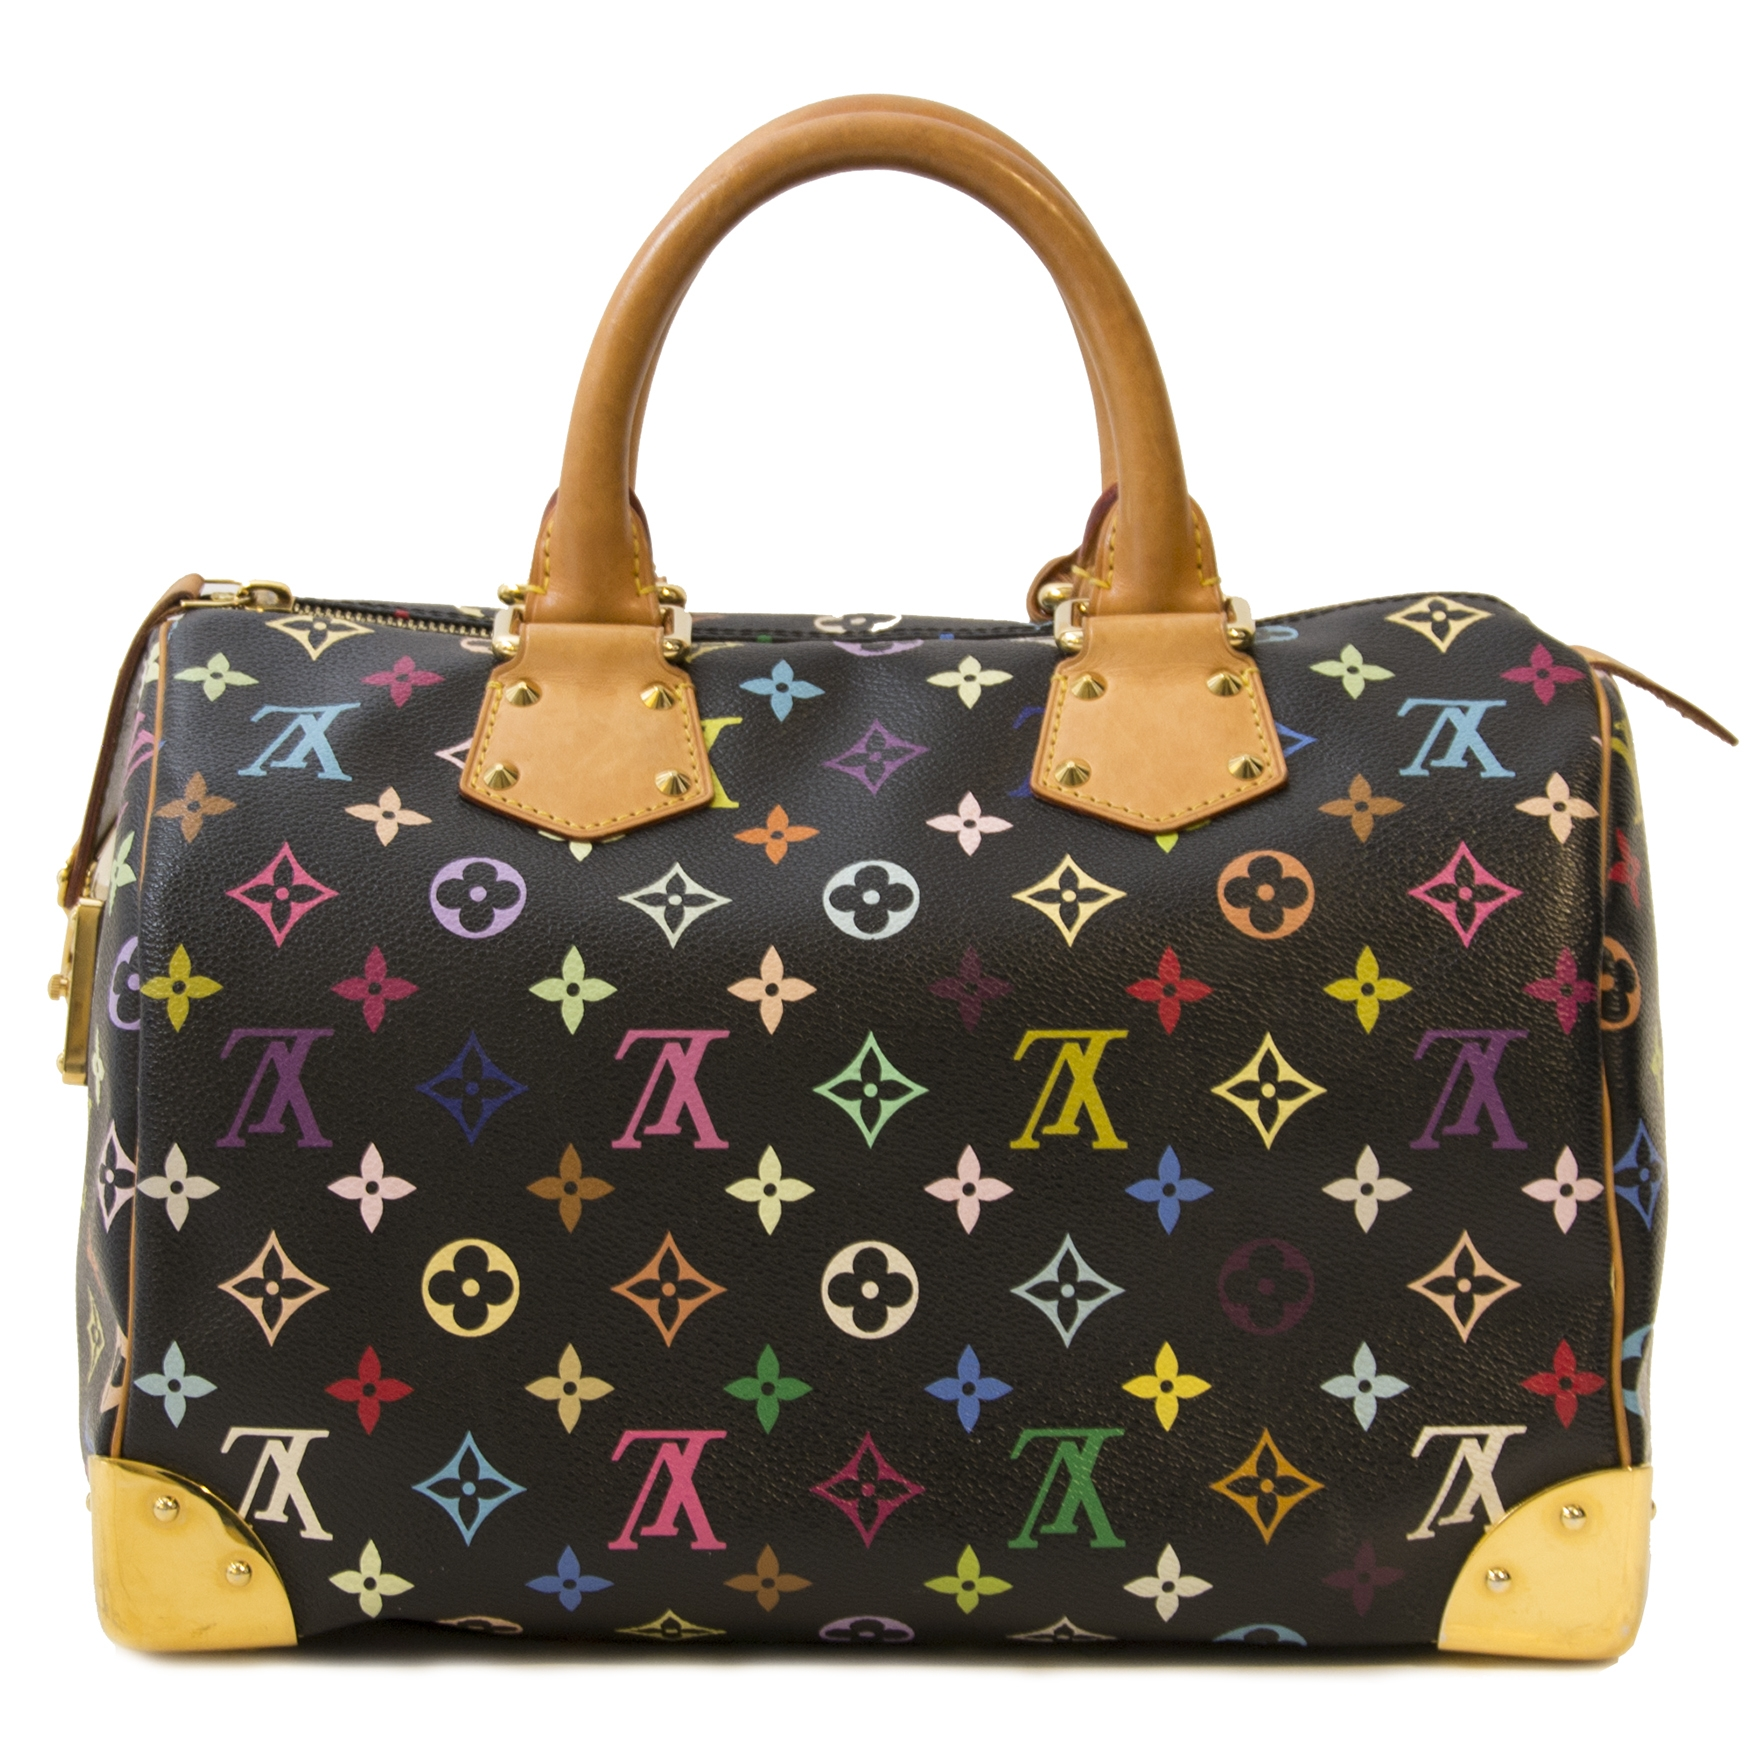 576a225a59f9 ... Louis Vuitton Black Multicolor Monogram Speedy by Takashi Murakami